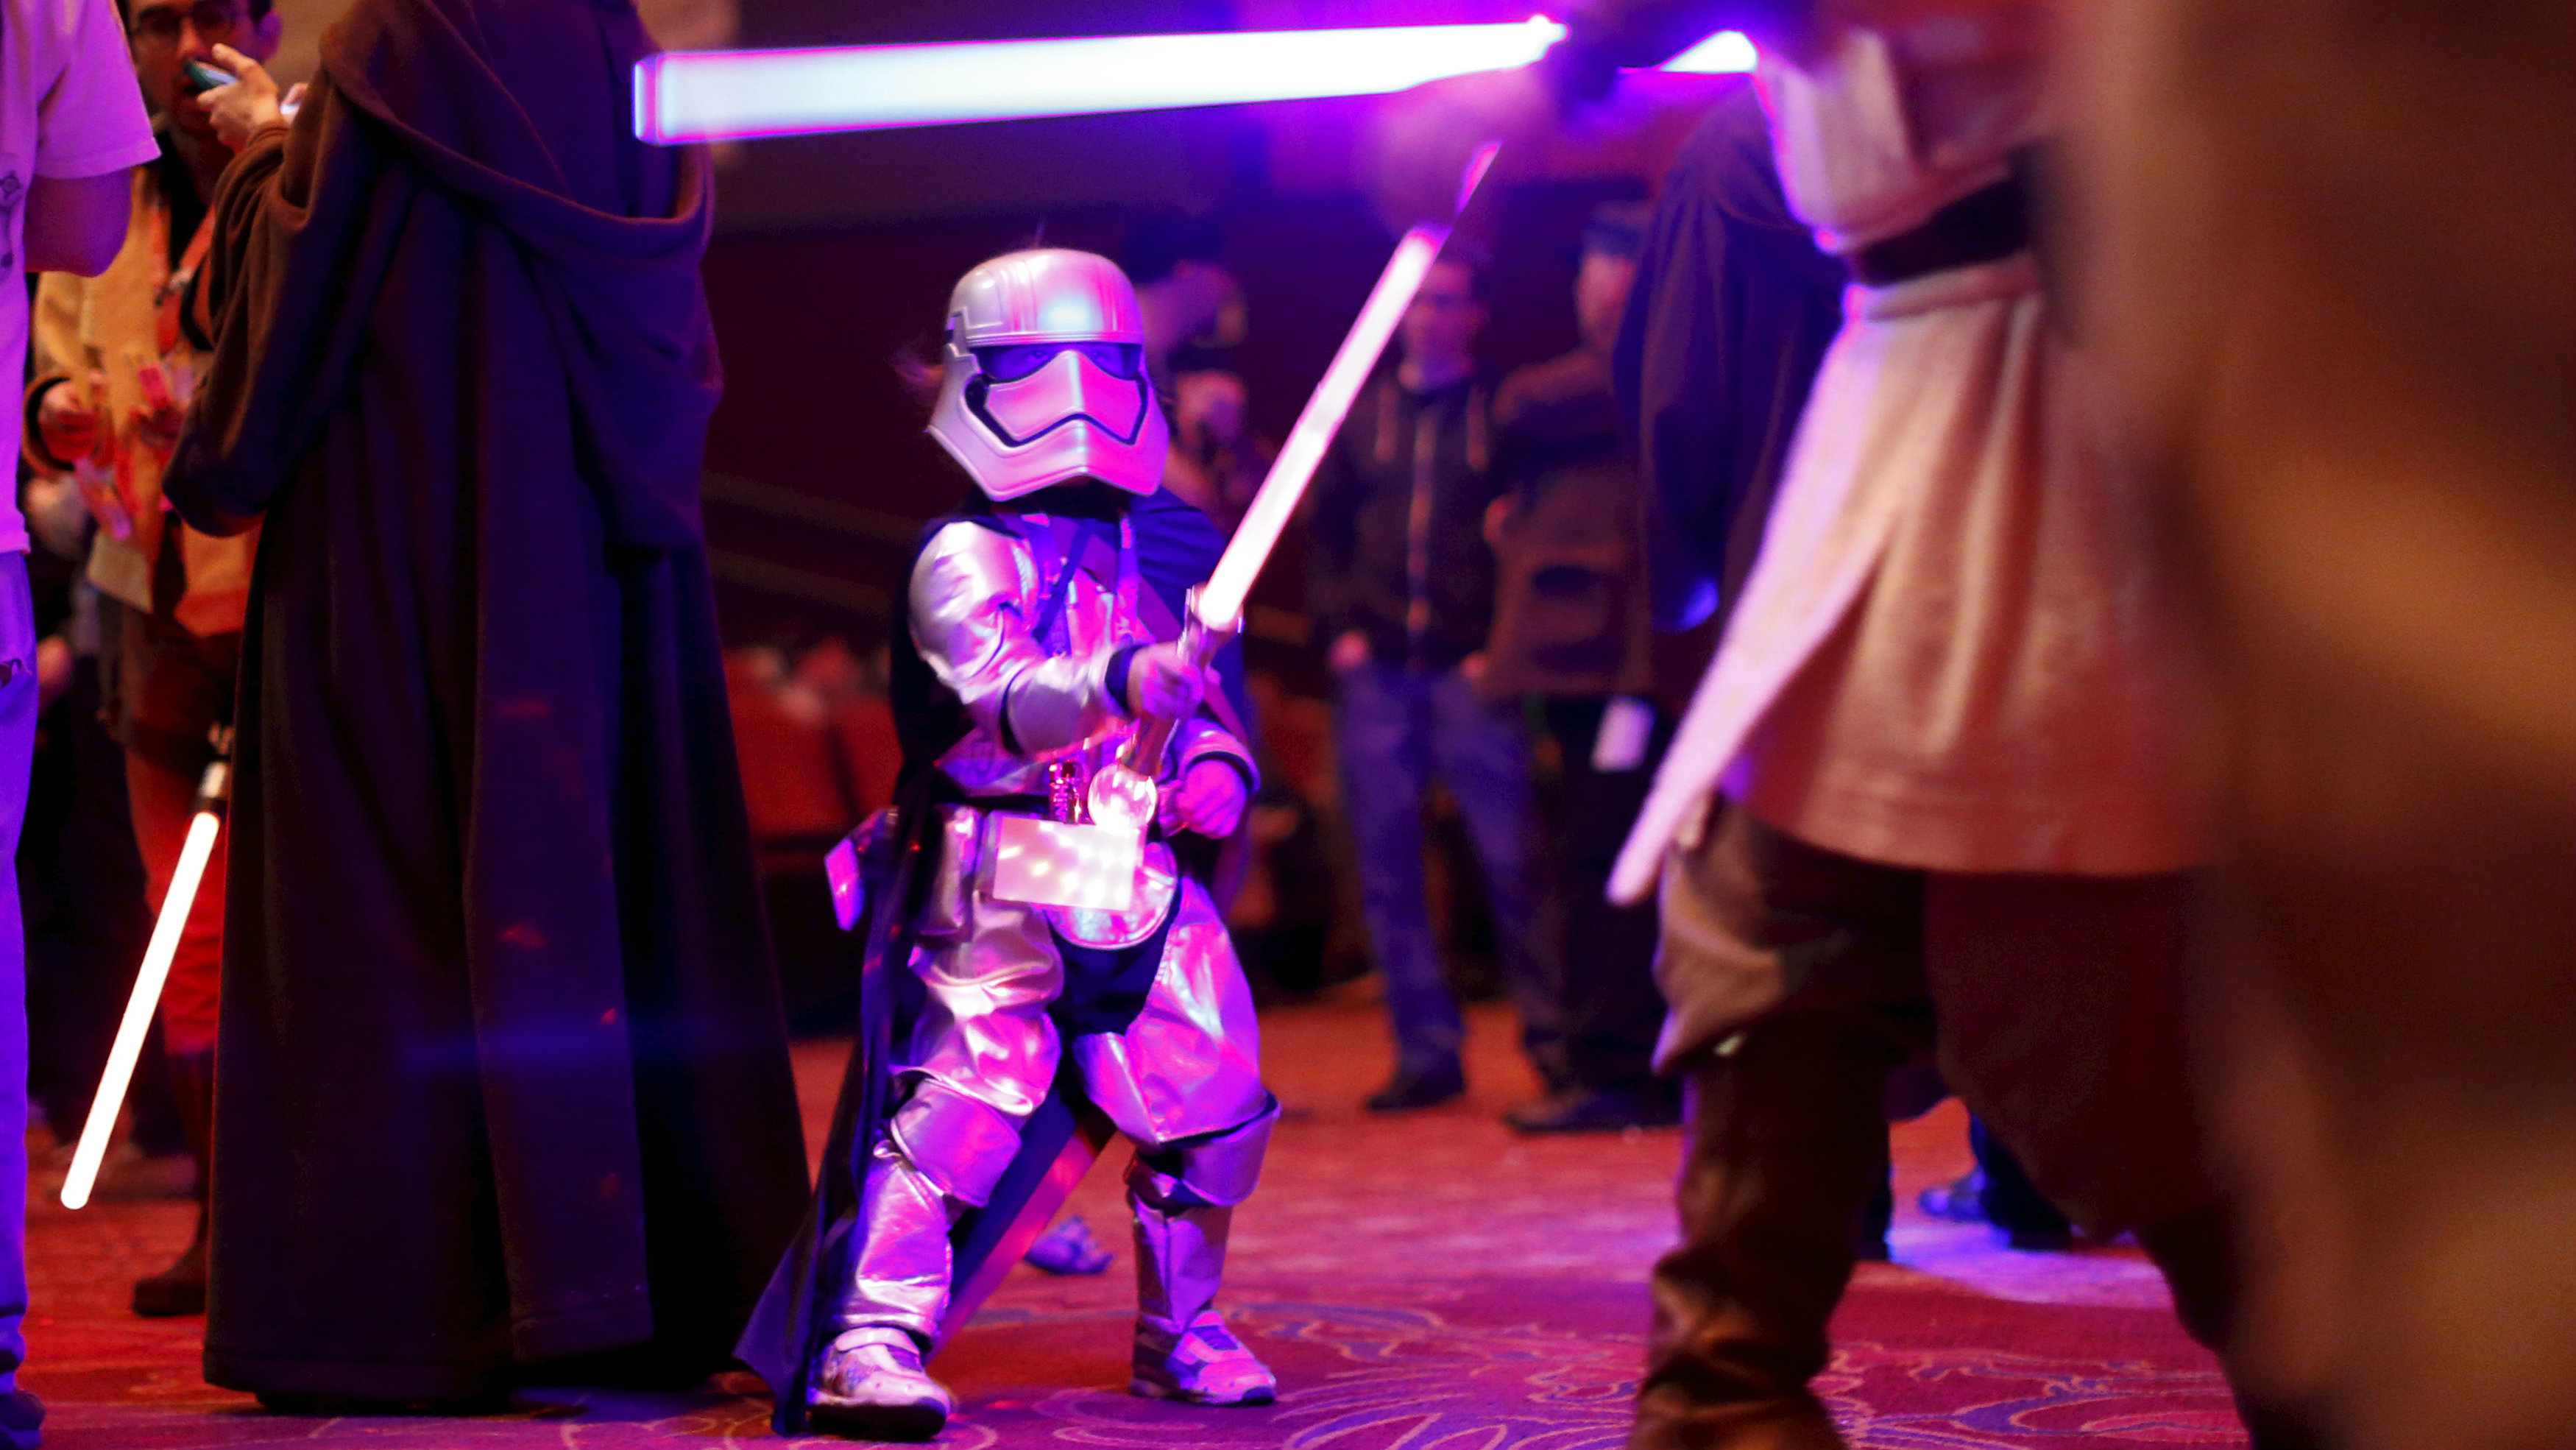 lightsaber kid